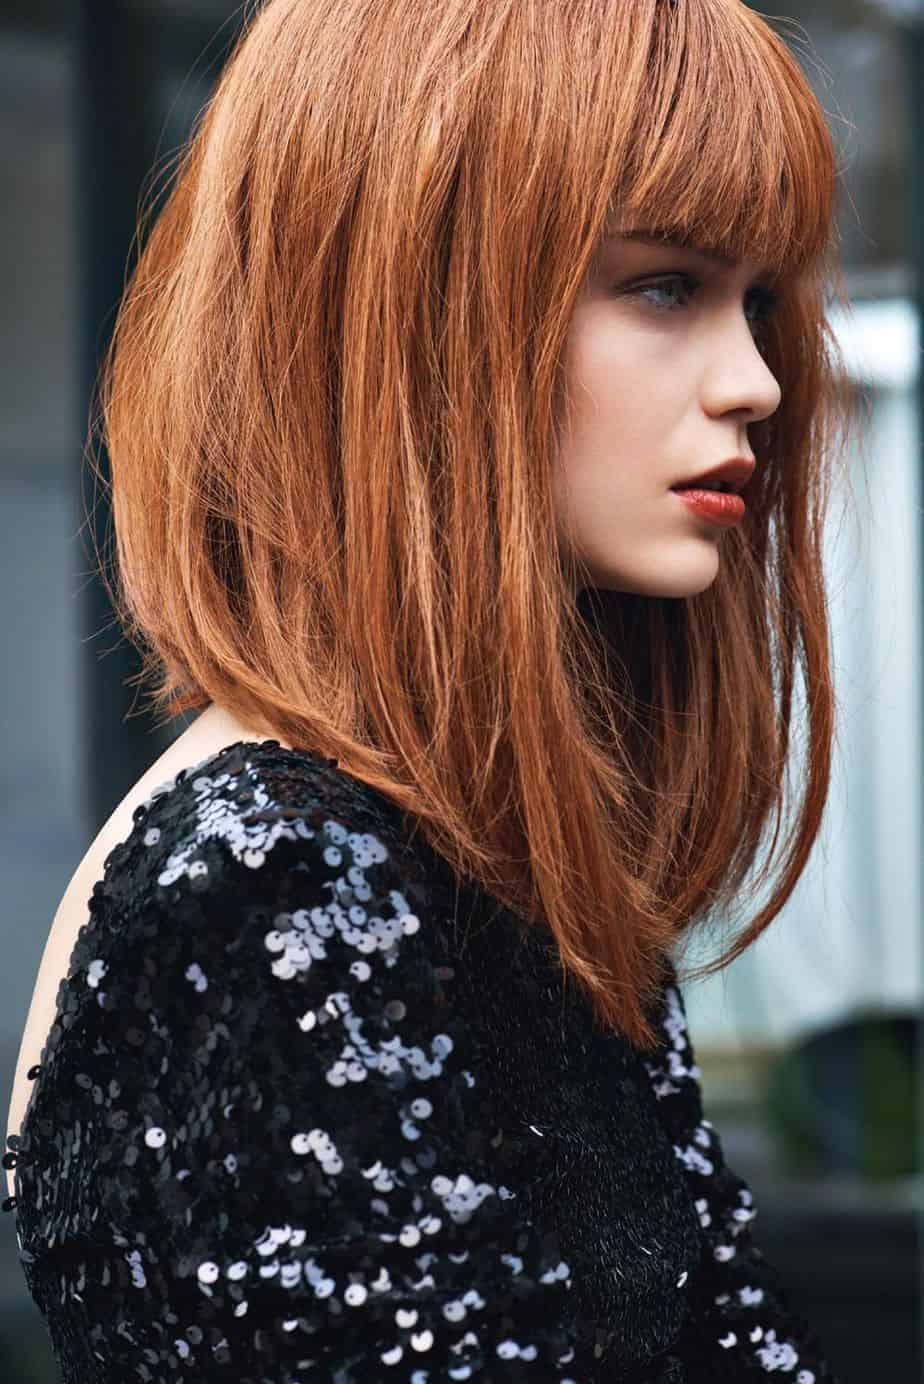 Popular 15 Haircuts for Long Hair 2021 l Hairstyles to Try ...